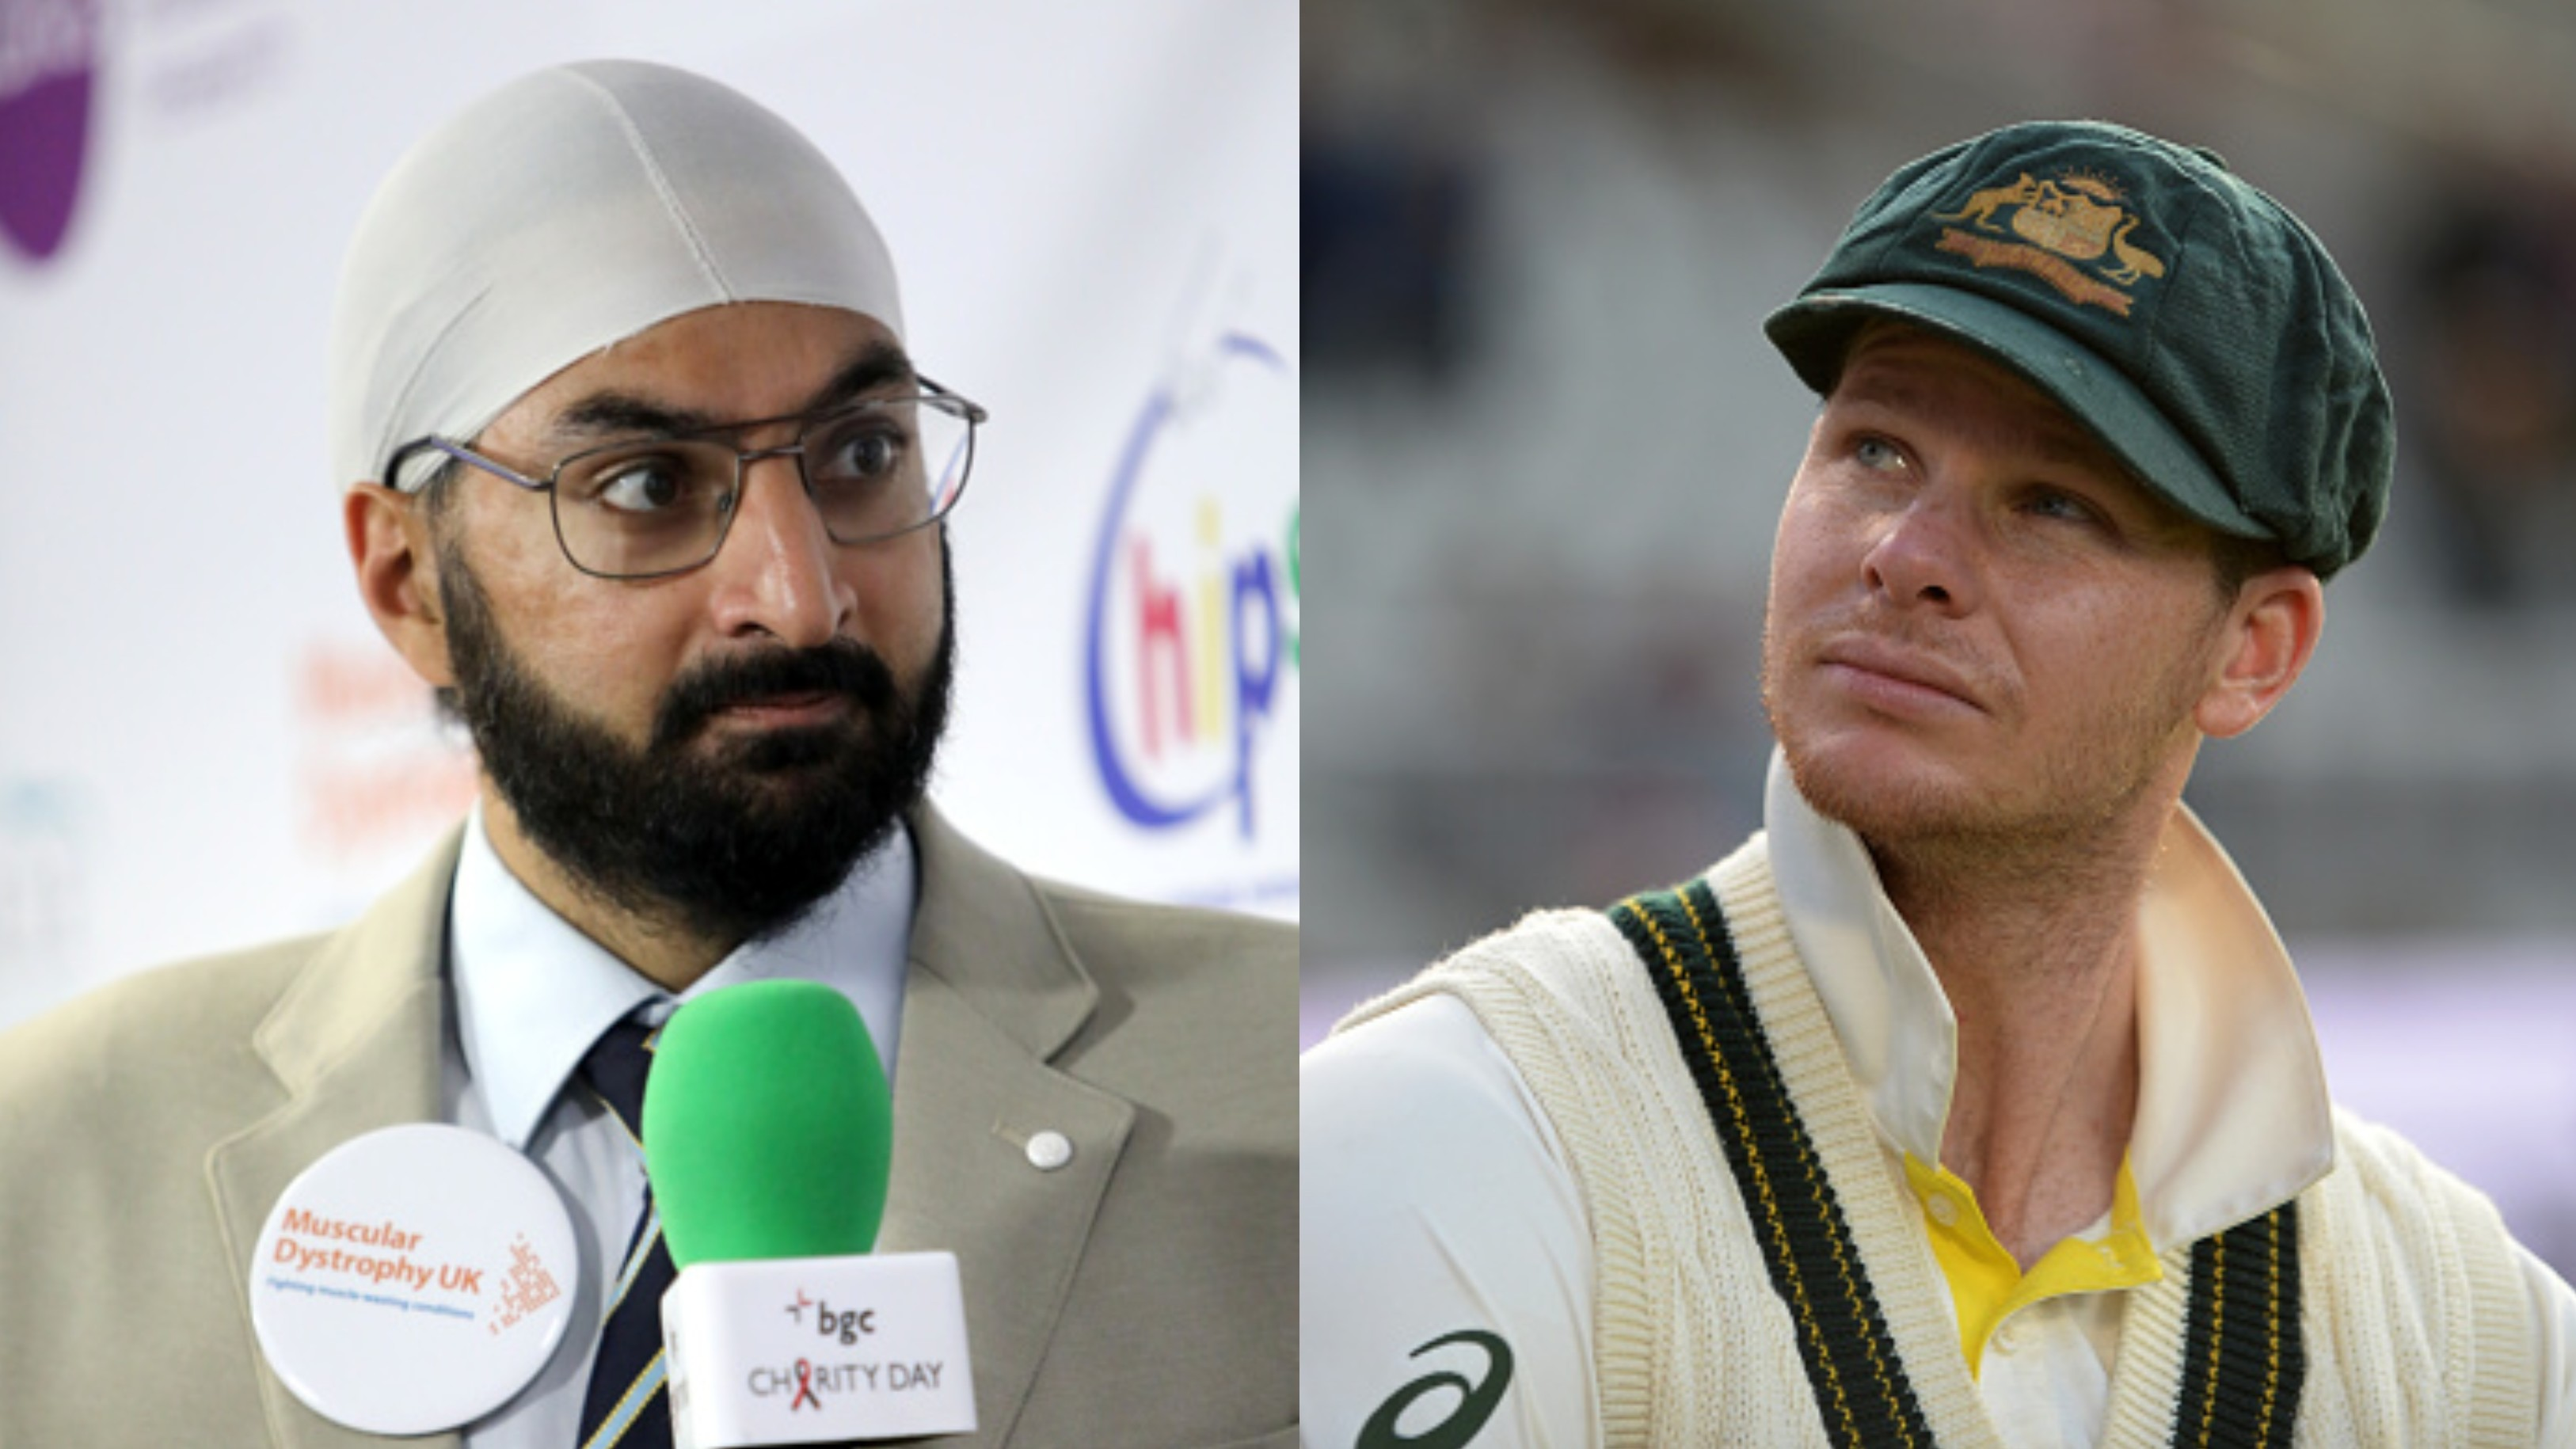 Comparing Steve Smith with any cricketing great is tarnishing their stature, says Monty Panesar